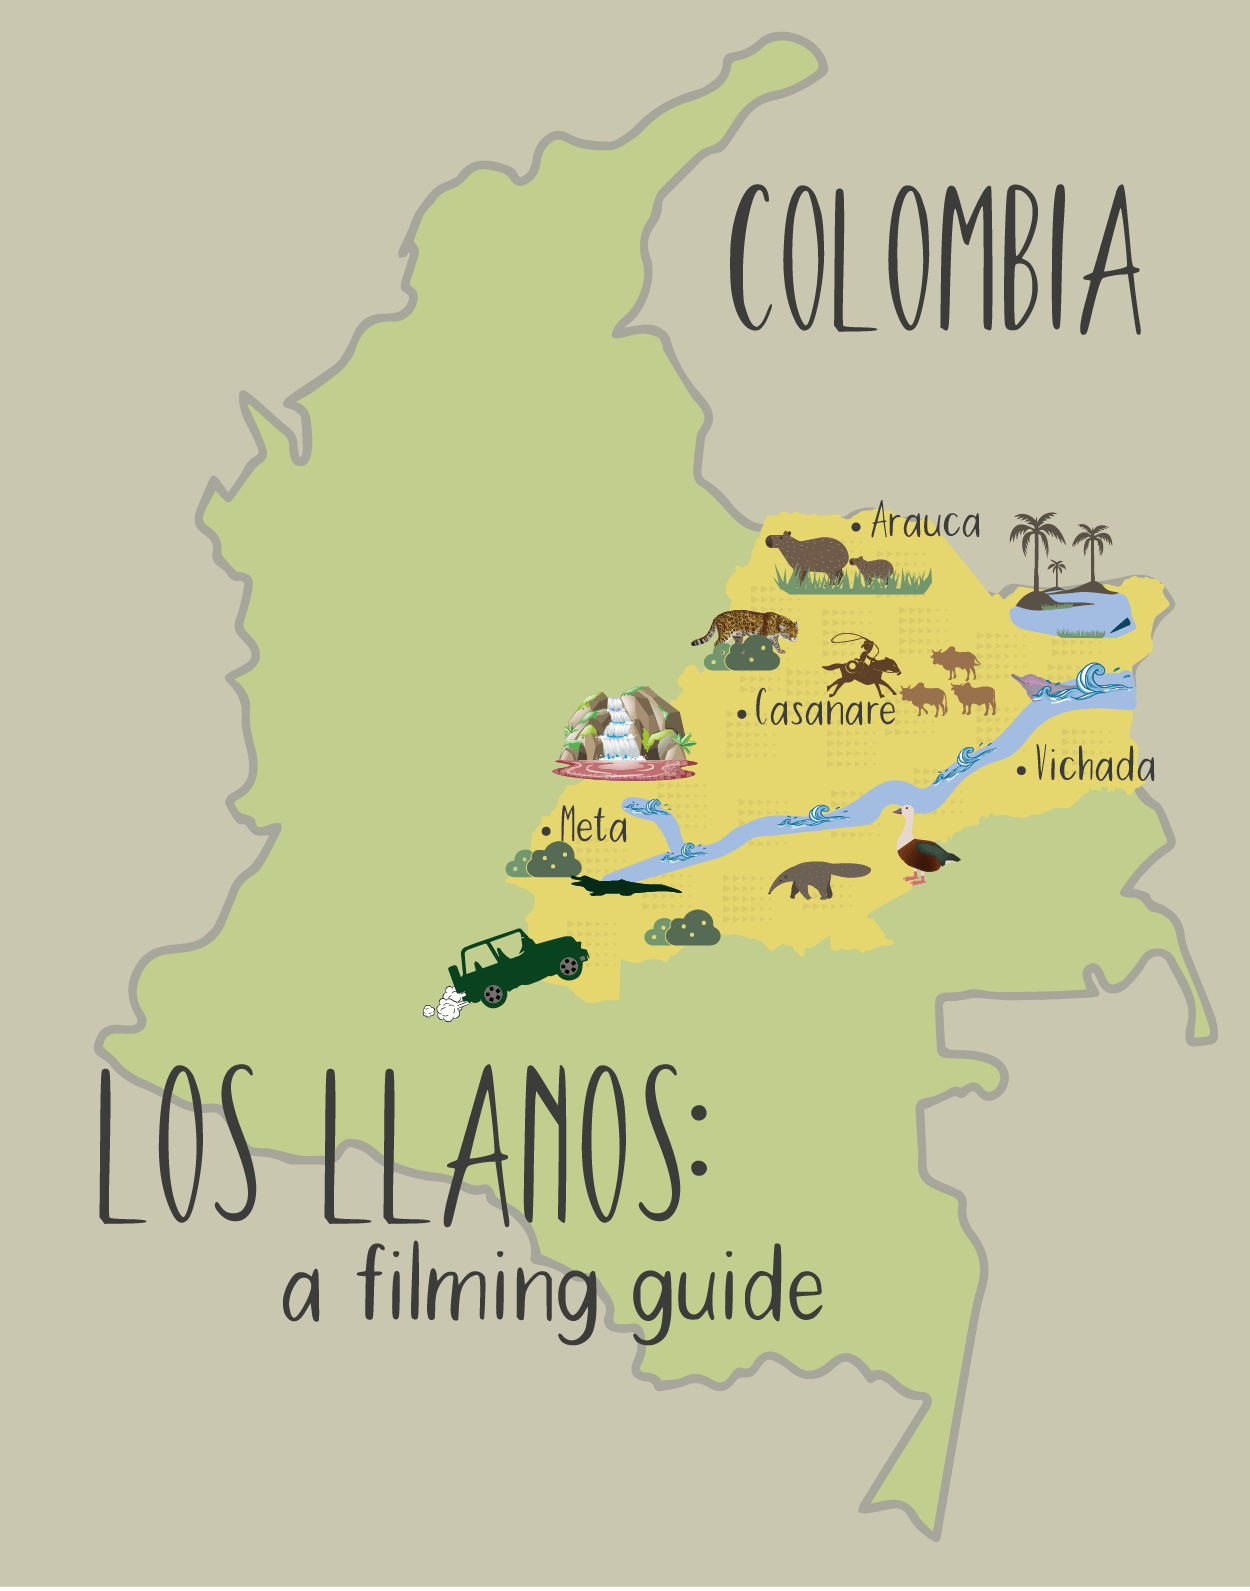 a filming guide to colombia los llanos